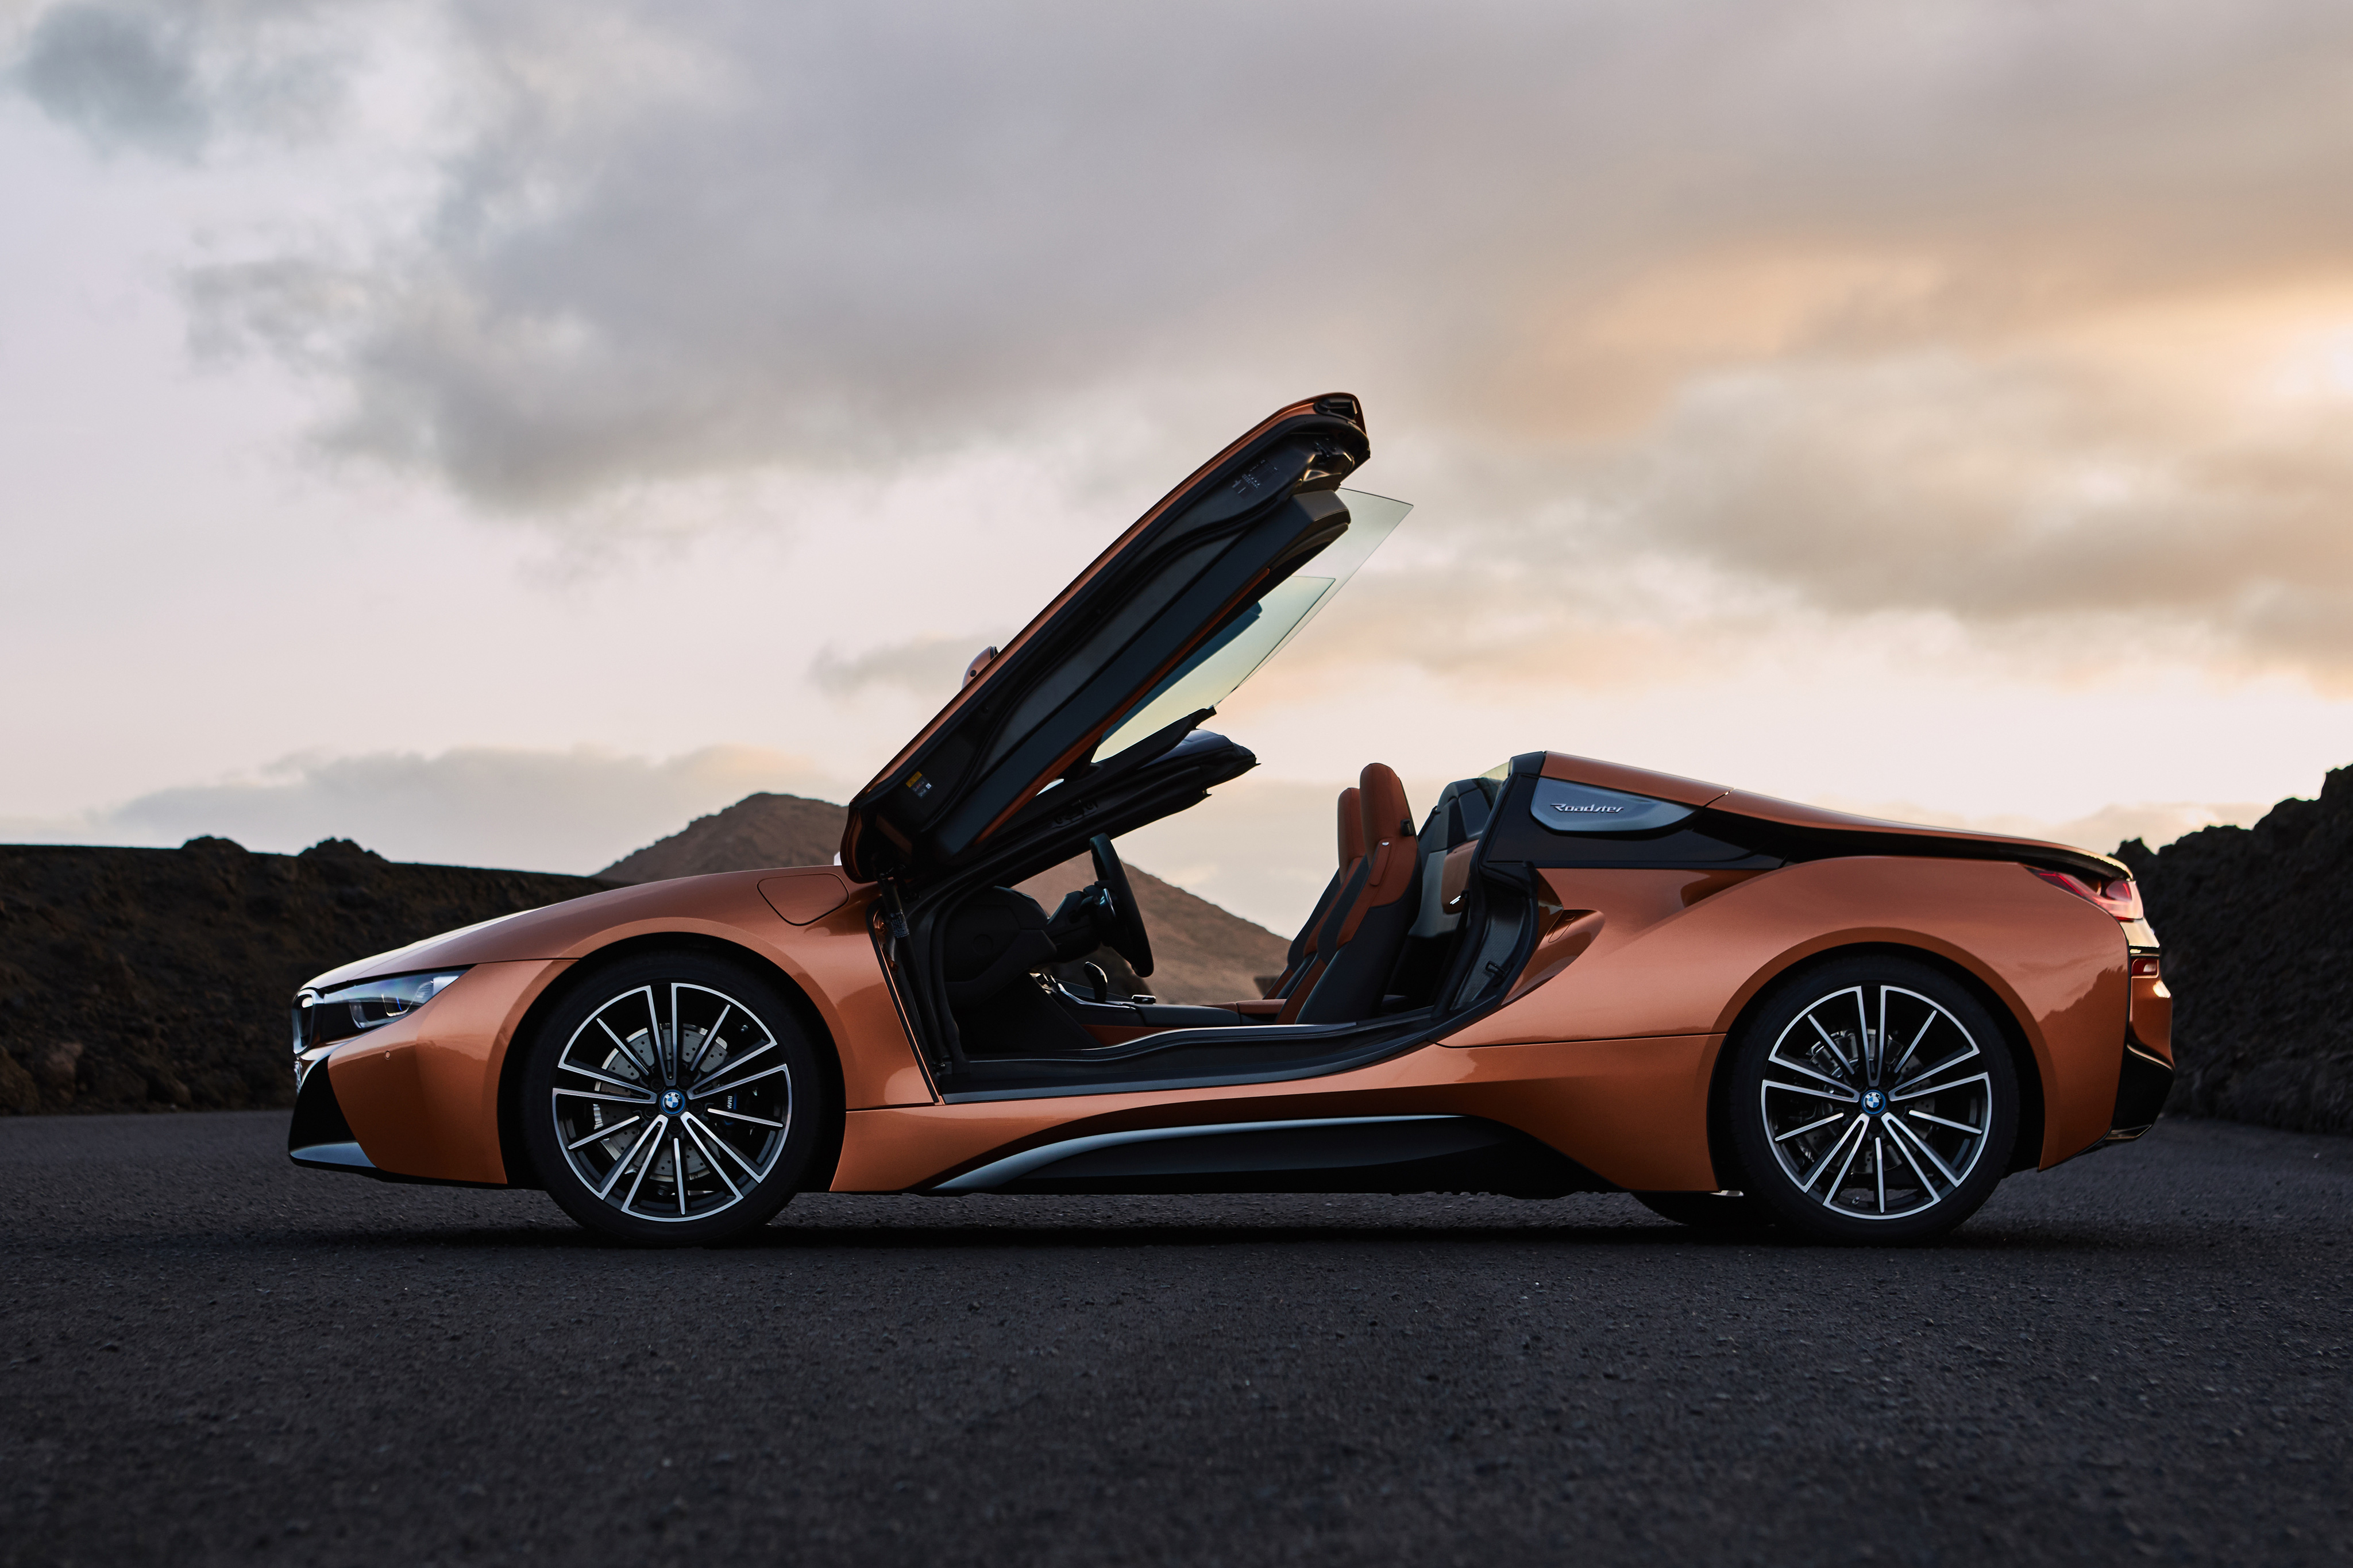 Bmw I8 Side View Hd Cars 4k Wallpapers Images Backgrounds